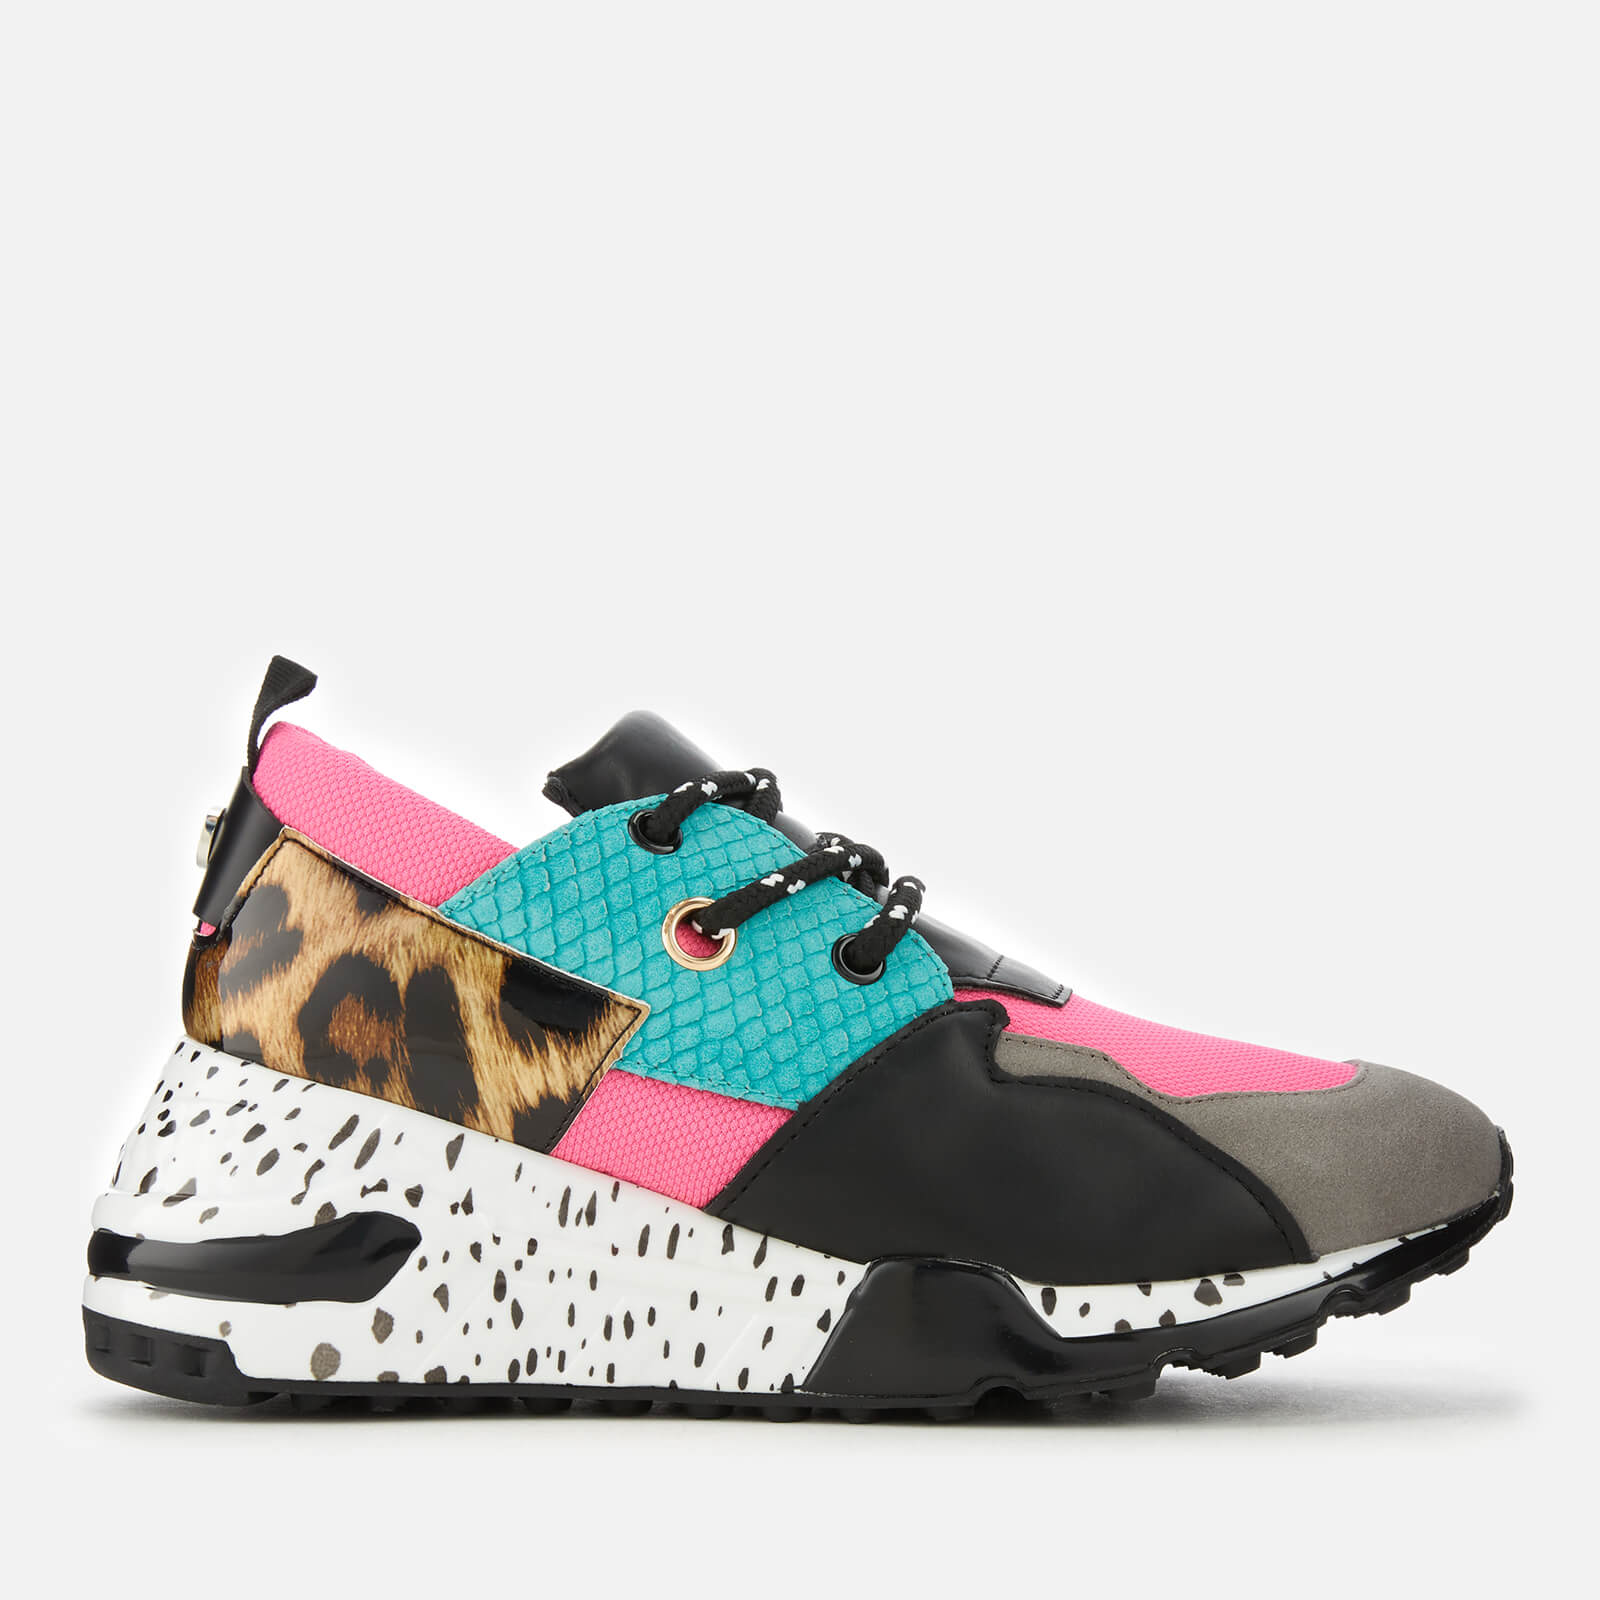 385bf830eae Steve Madden Women s Cliff Running Style Trainers - Bright Multi Womens  Footwear